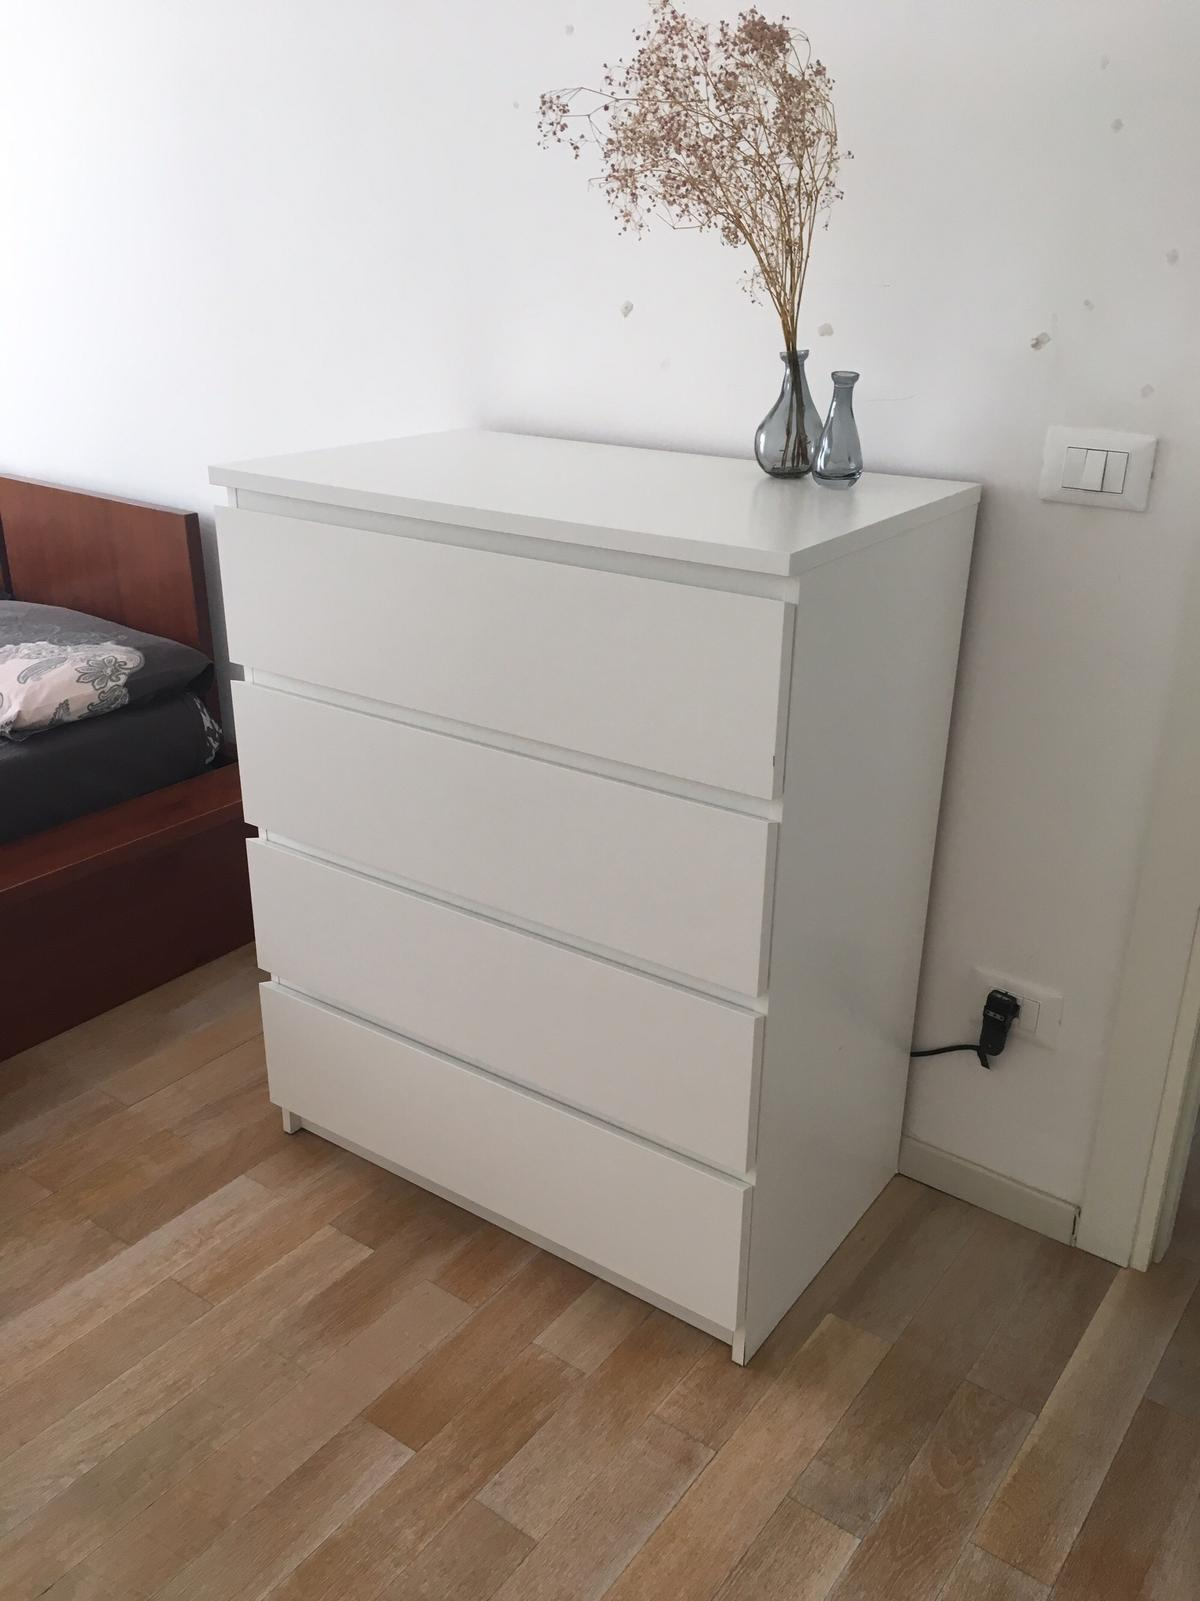 Malm Cassettiera 4 Cassetti.Cassettiera 4 Cassetti Ikea Bianco In 00199 Roma For 45 00 For